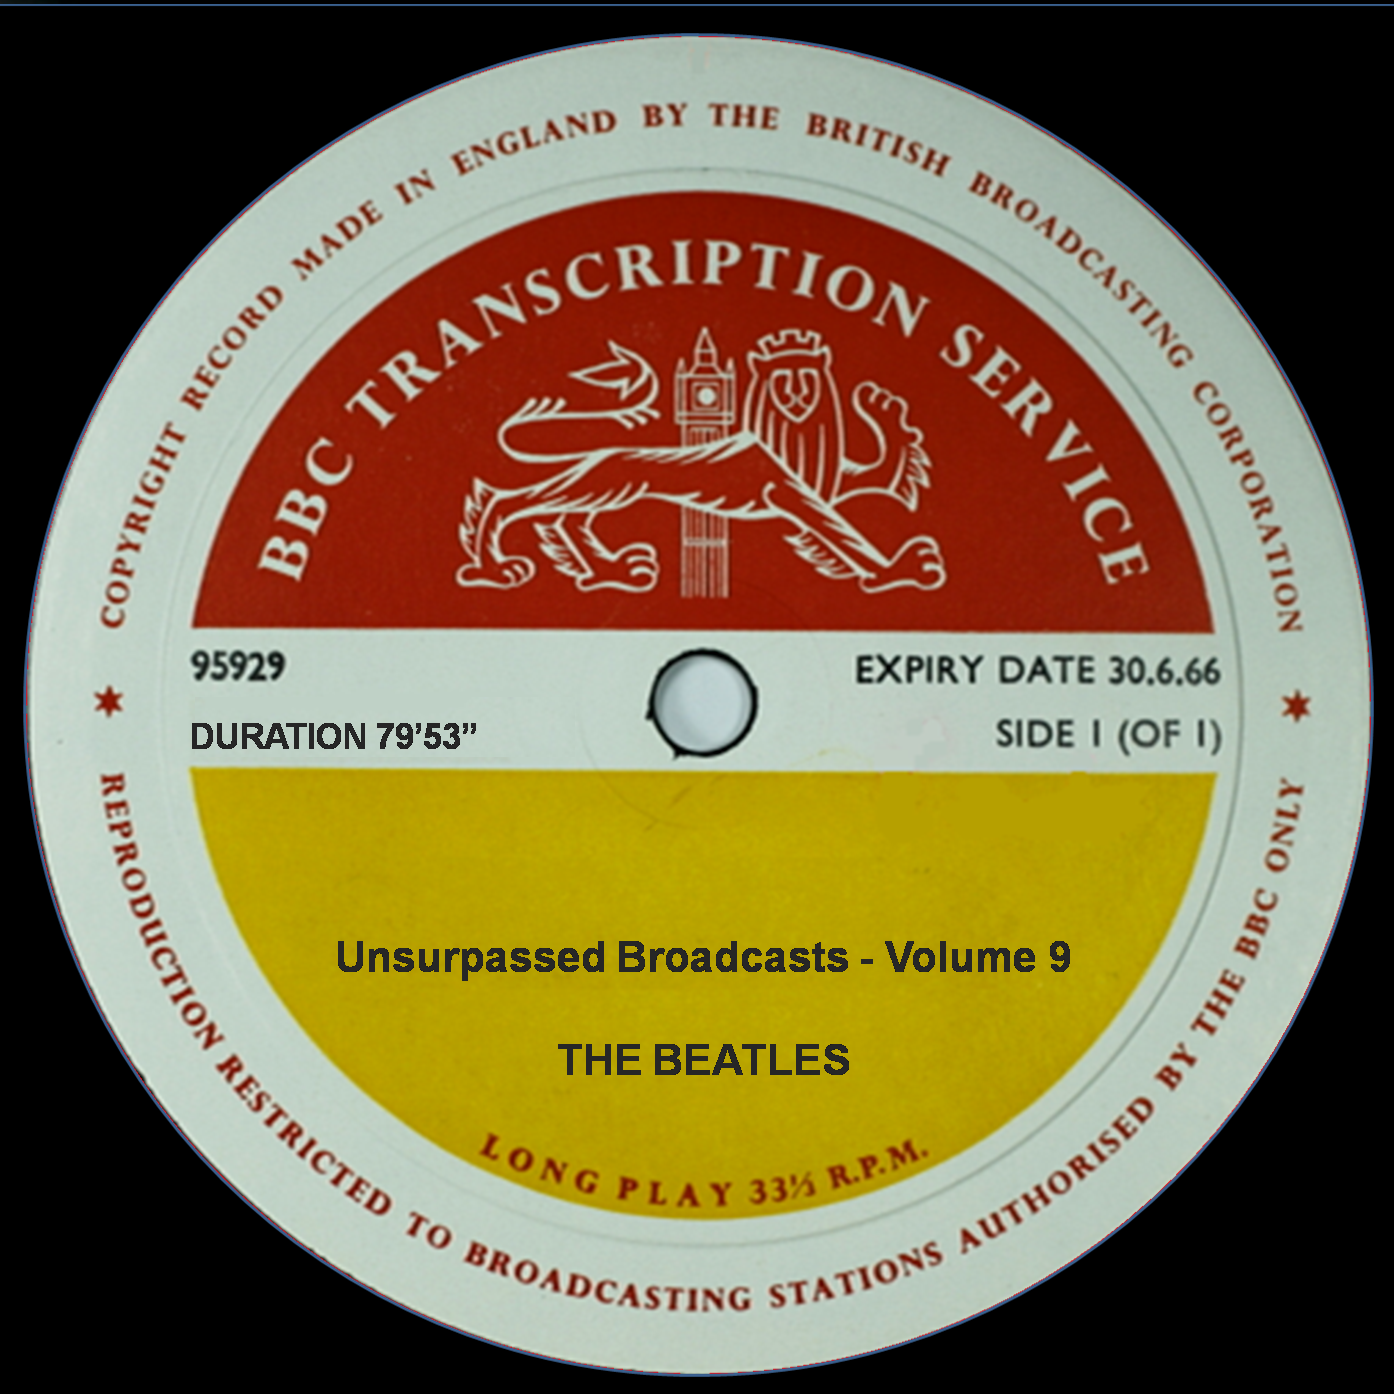 BeatlesUnsurpassedBroadcasts2ndEditionVolume09 (2).PNG